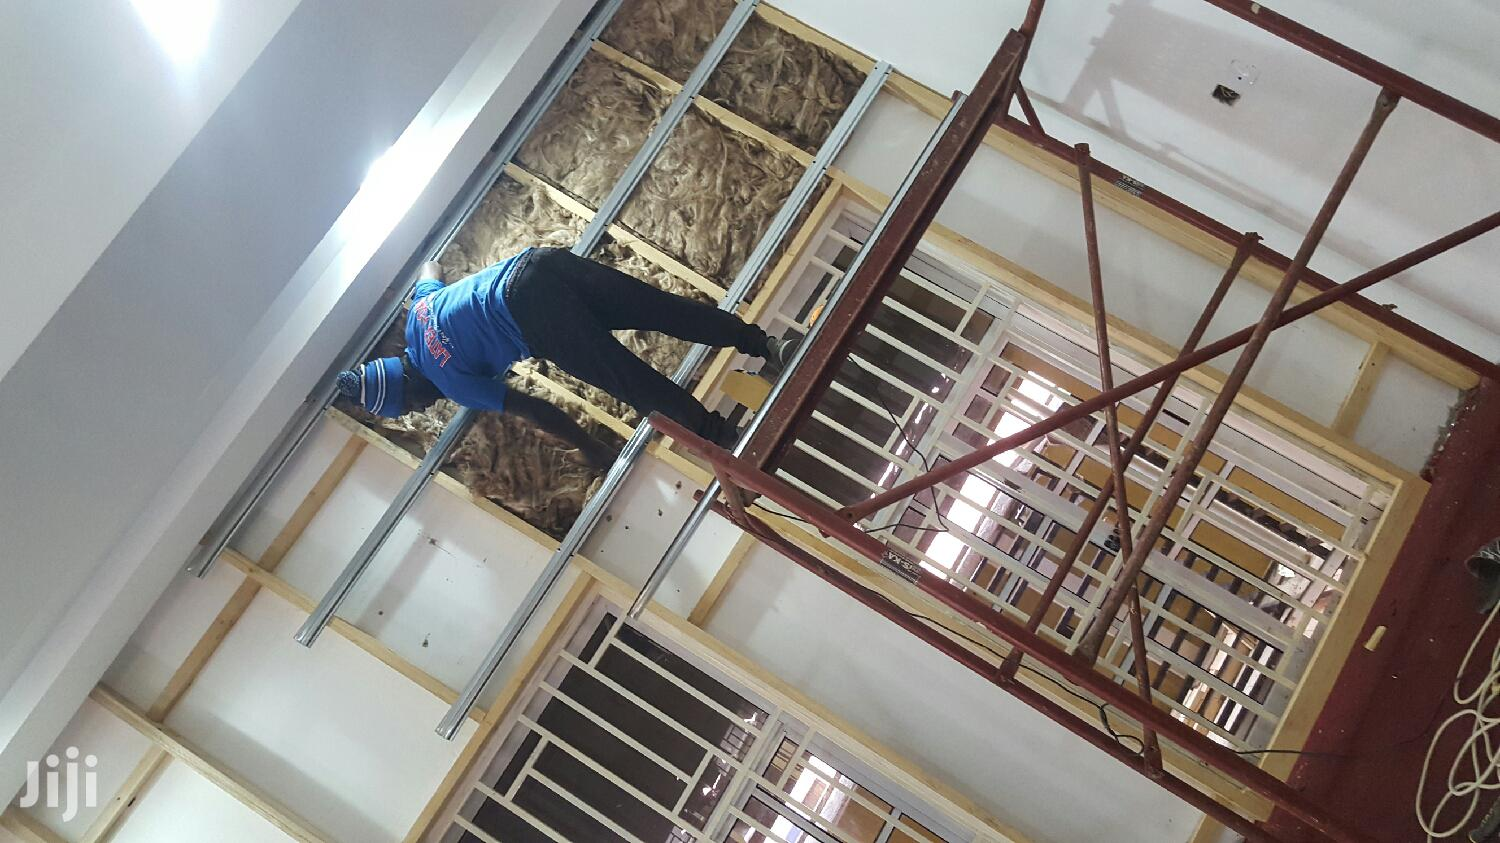 Soundproof Partition   Building & Trades Services for sale in Accra Metropolitan, Greater Accra, Ghana